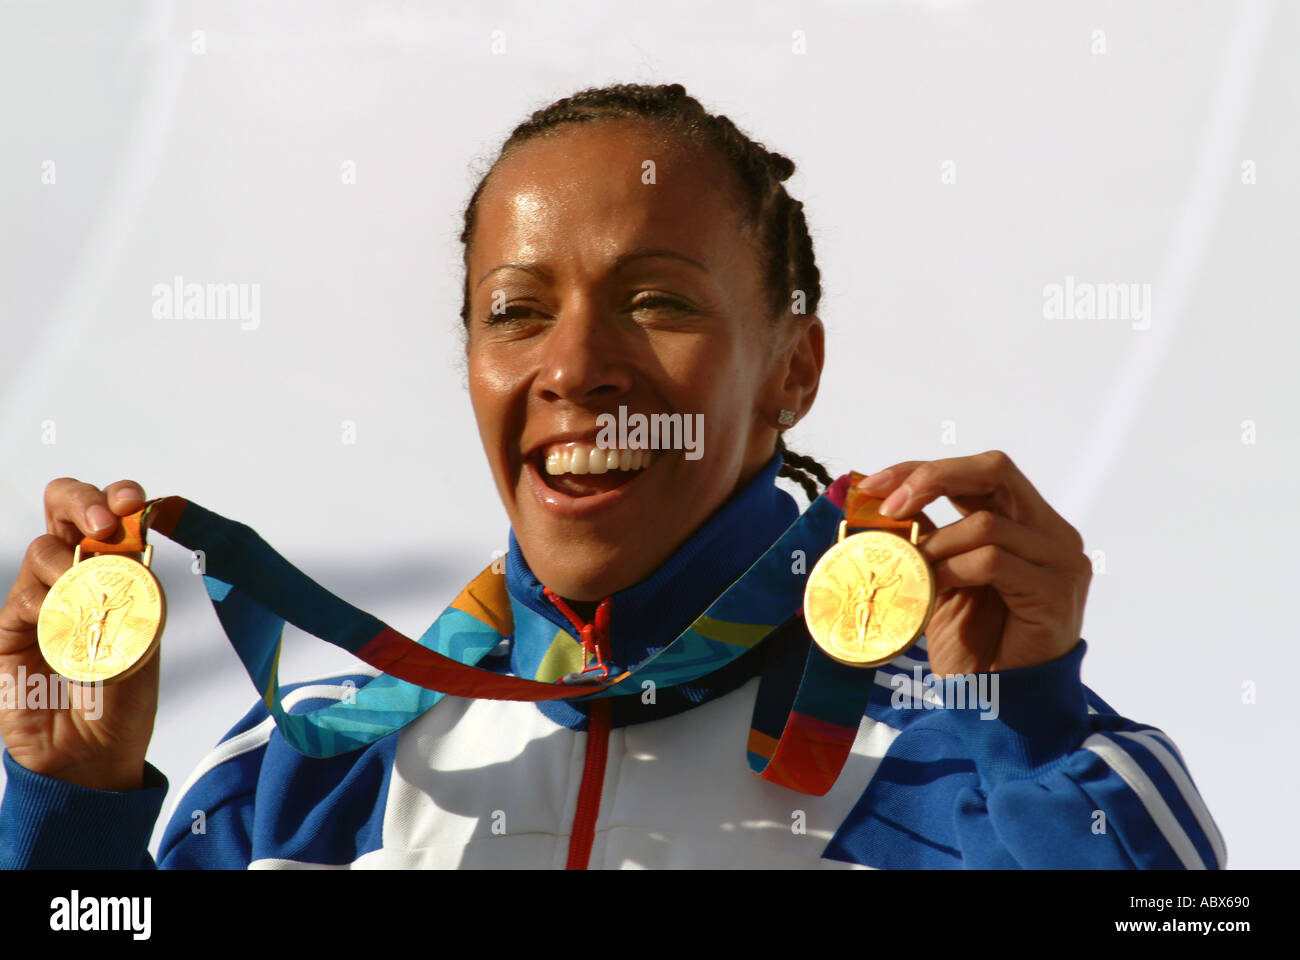 Kelly Holmes 3 Olympic medals in middle distance running Kelly Holmes 3 Olympic medals in middle distance running new picture